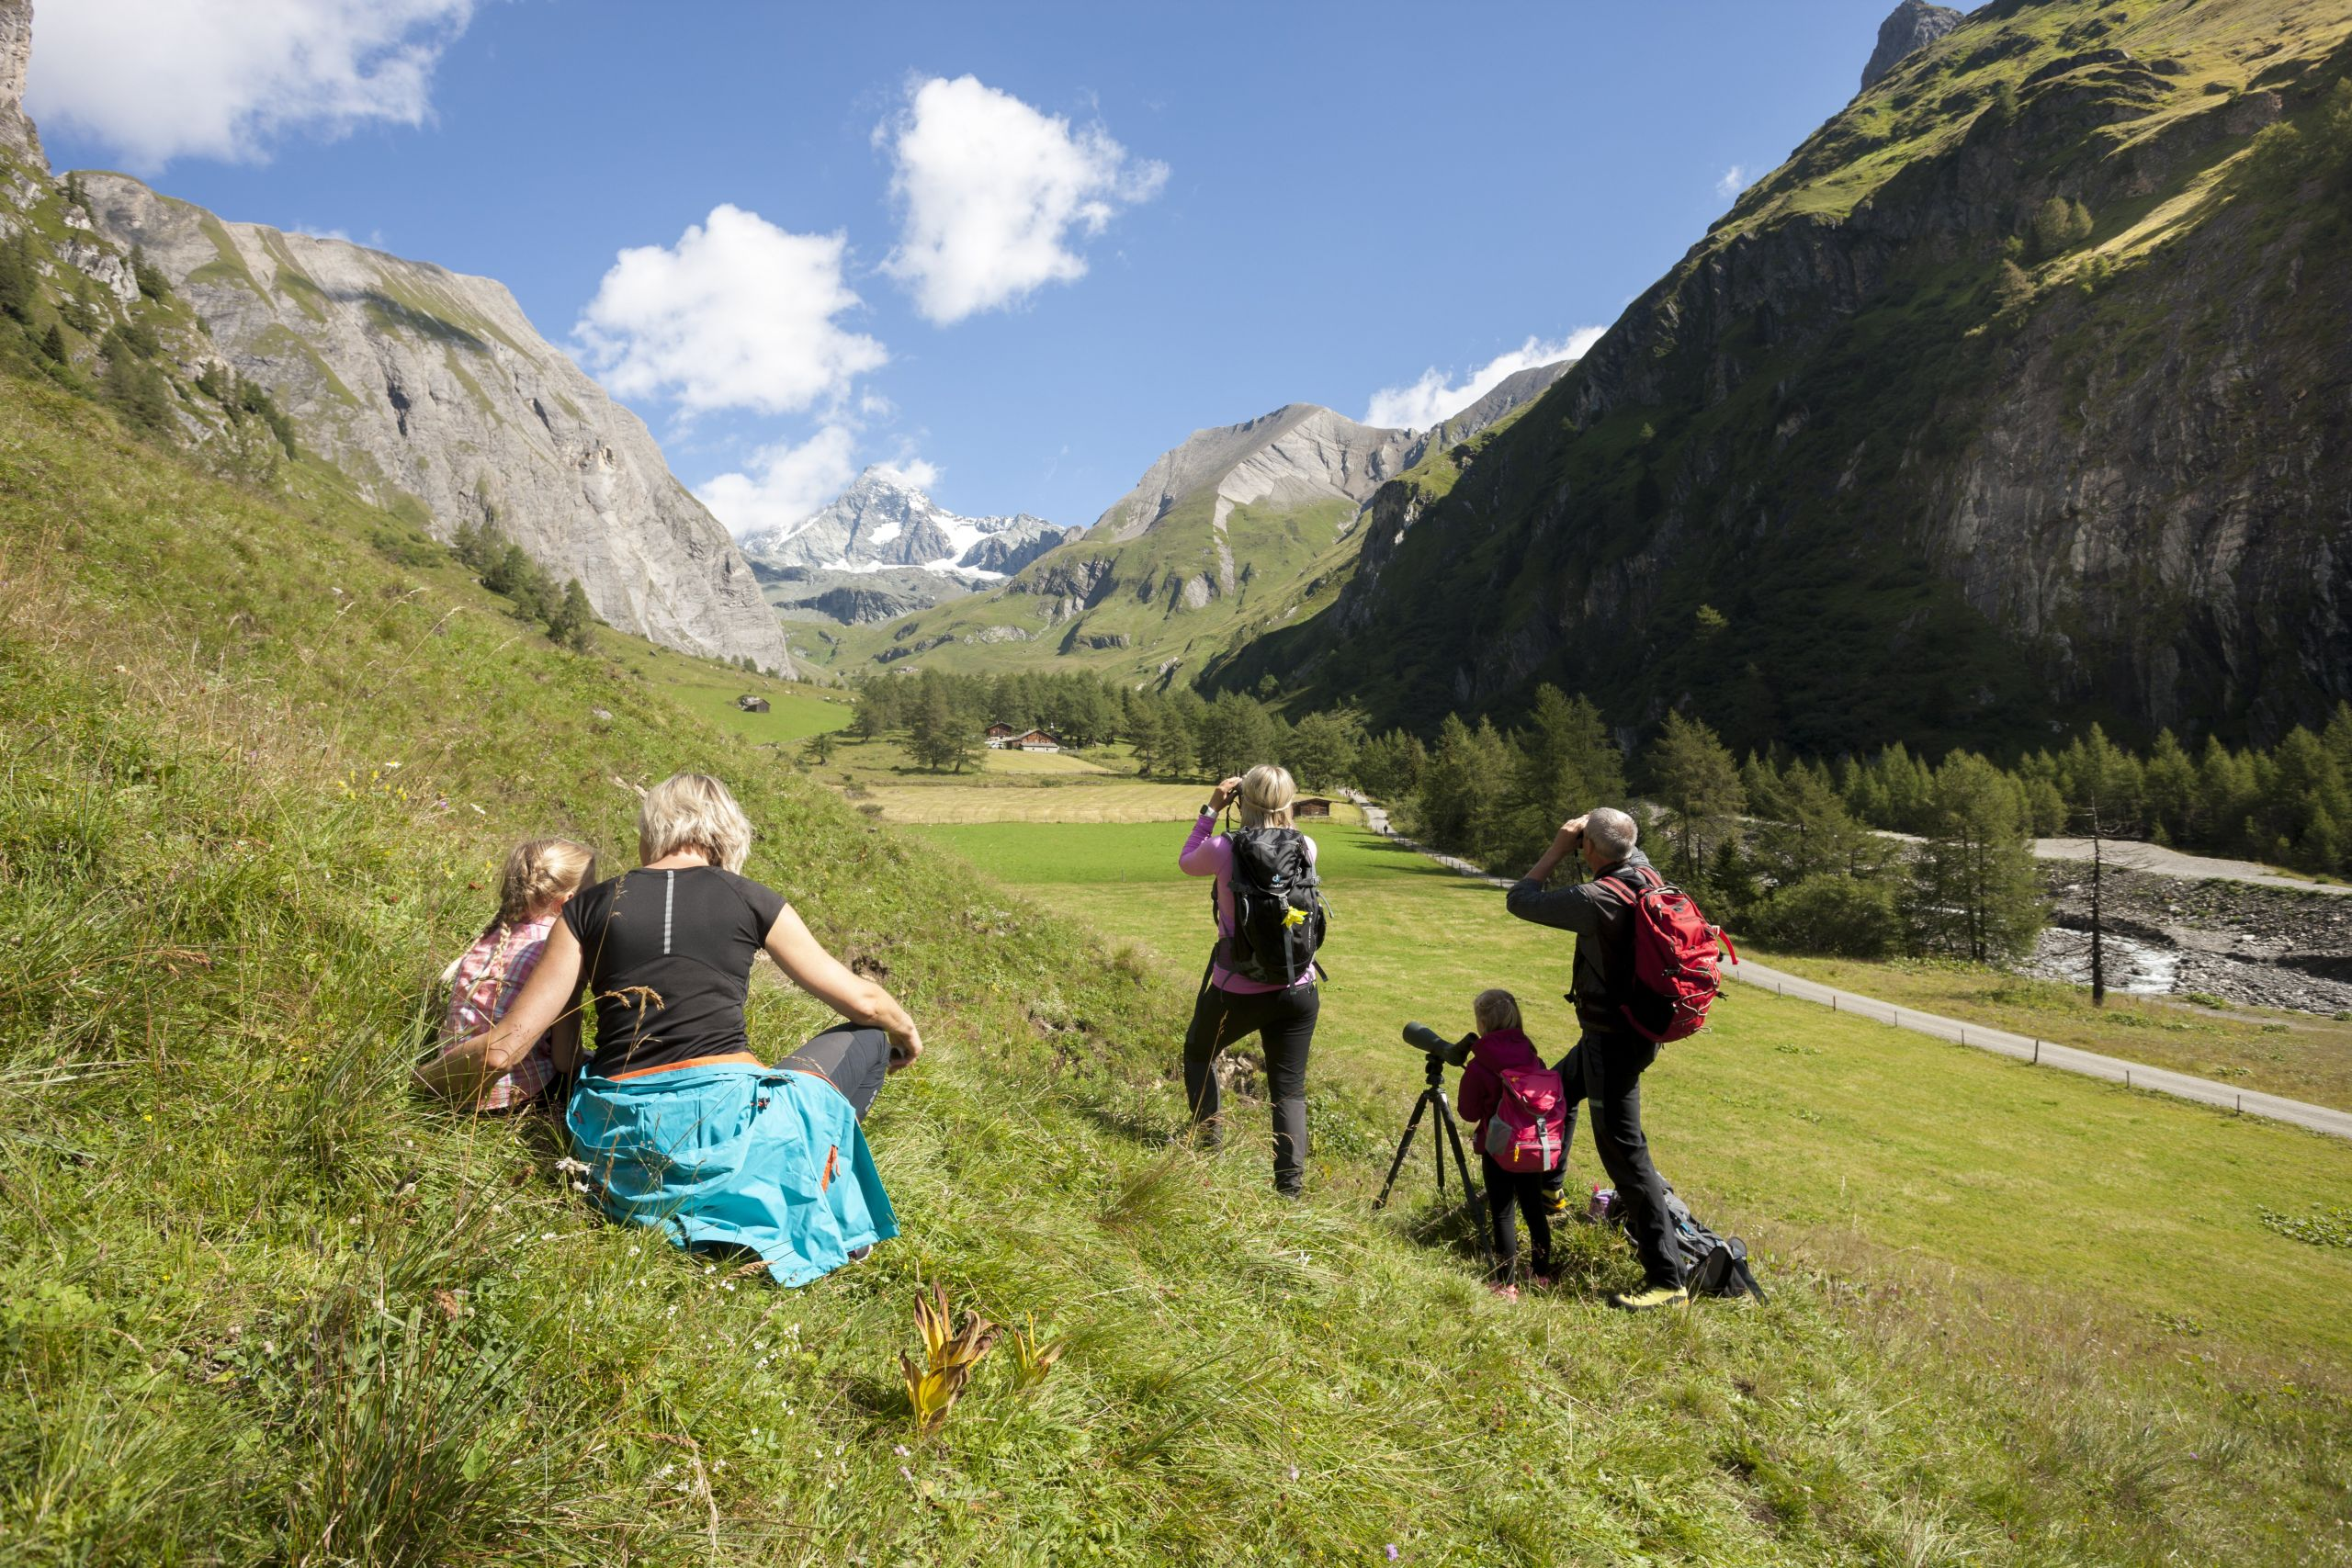 Nature Watch, Kals am Großglockner, © Nationalpark Hohe Tauern Osttirol, Martin Lugger